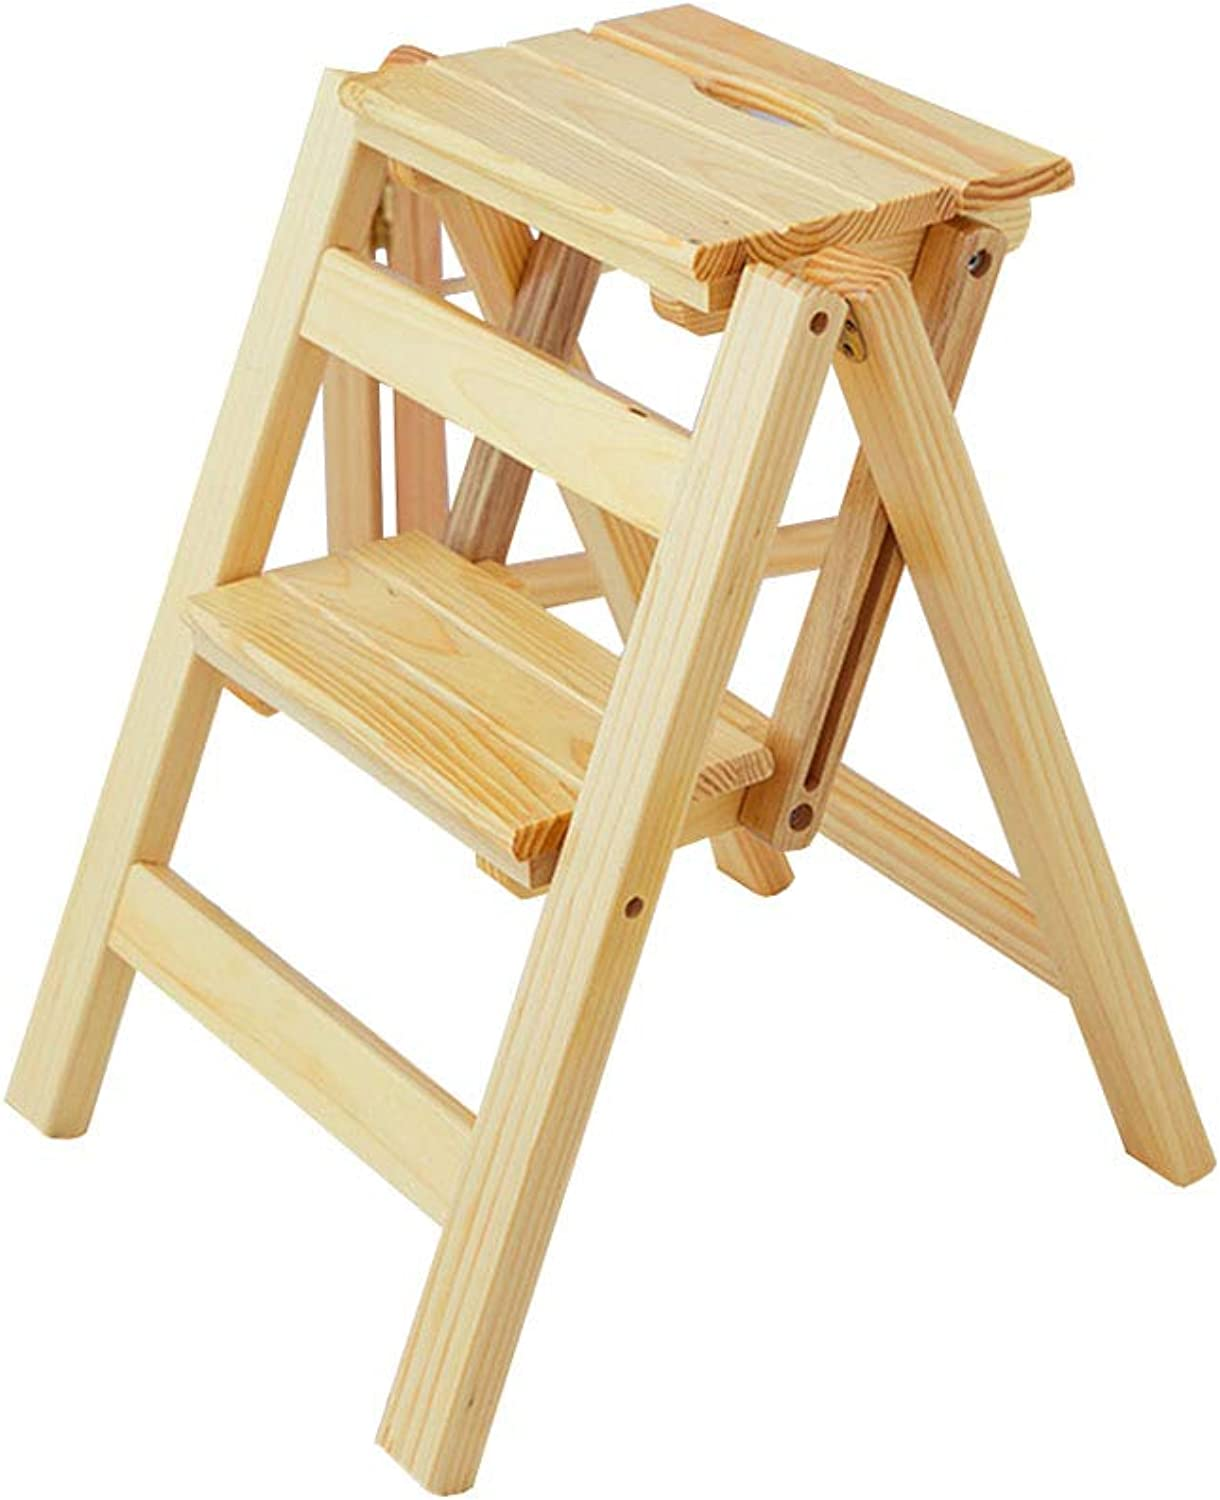 Wooden 2 Step Ladder Stool Folding Portable Ascending Ladder Dual-use for Home Office(39.5  44  47cm)